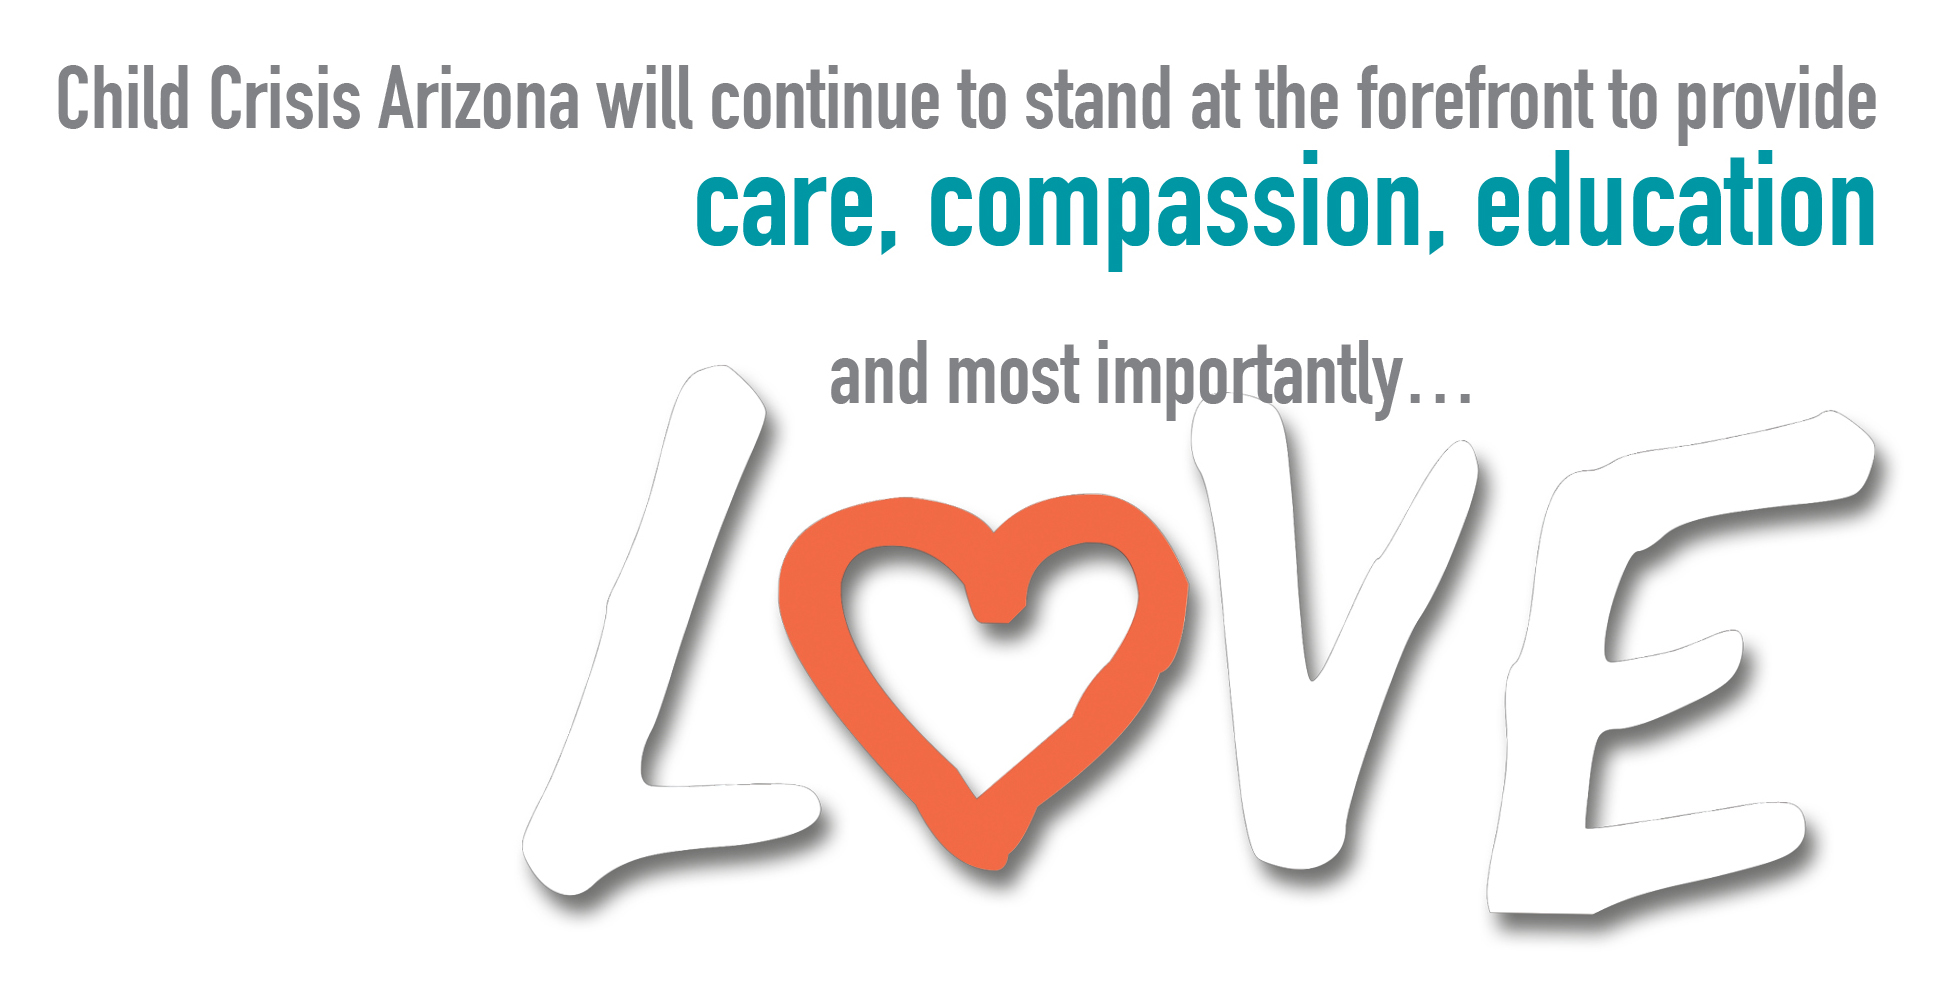 Child Crisis Arizona will continue to stand at the forefront to provide care, compassion, education and most importantly... LOVE